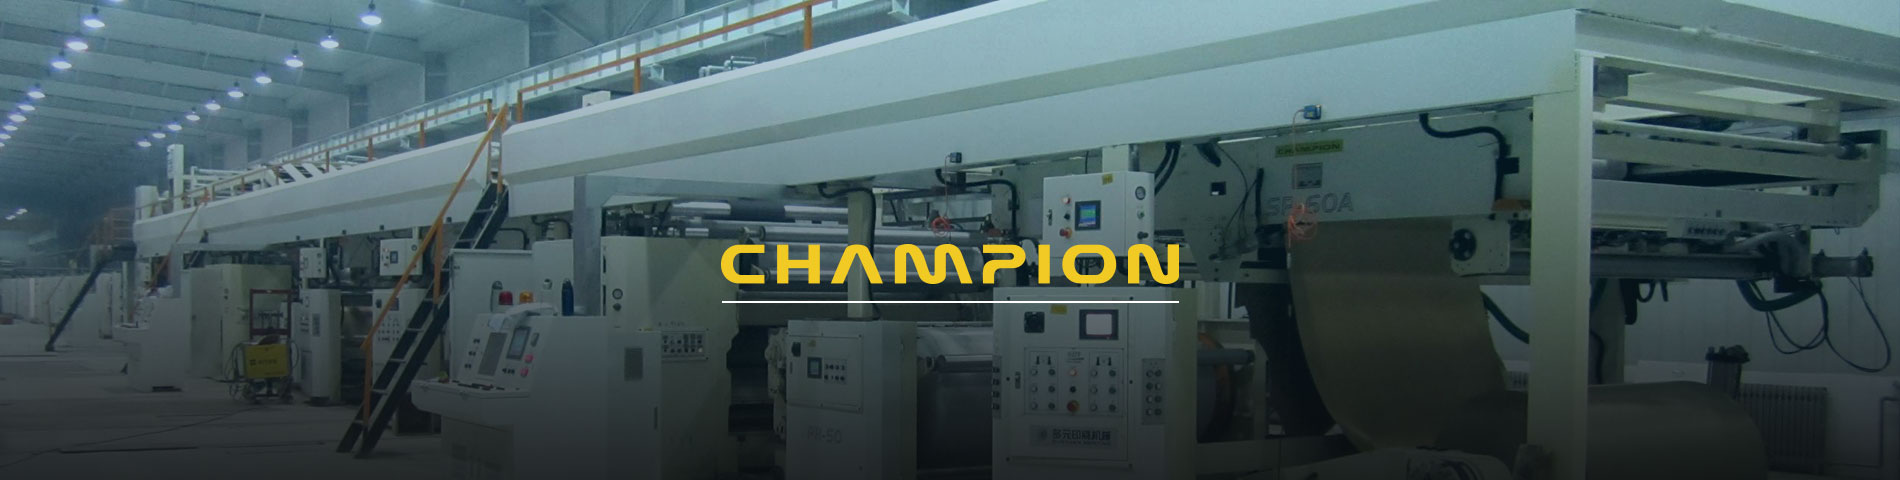 Champion Corrugated is a Professional Corrugated Cardboard Equipment Manufacturer